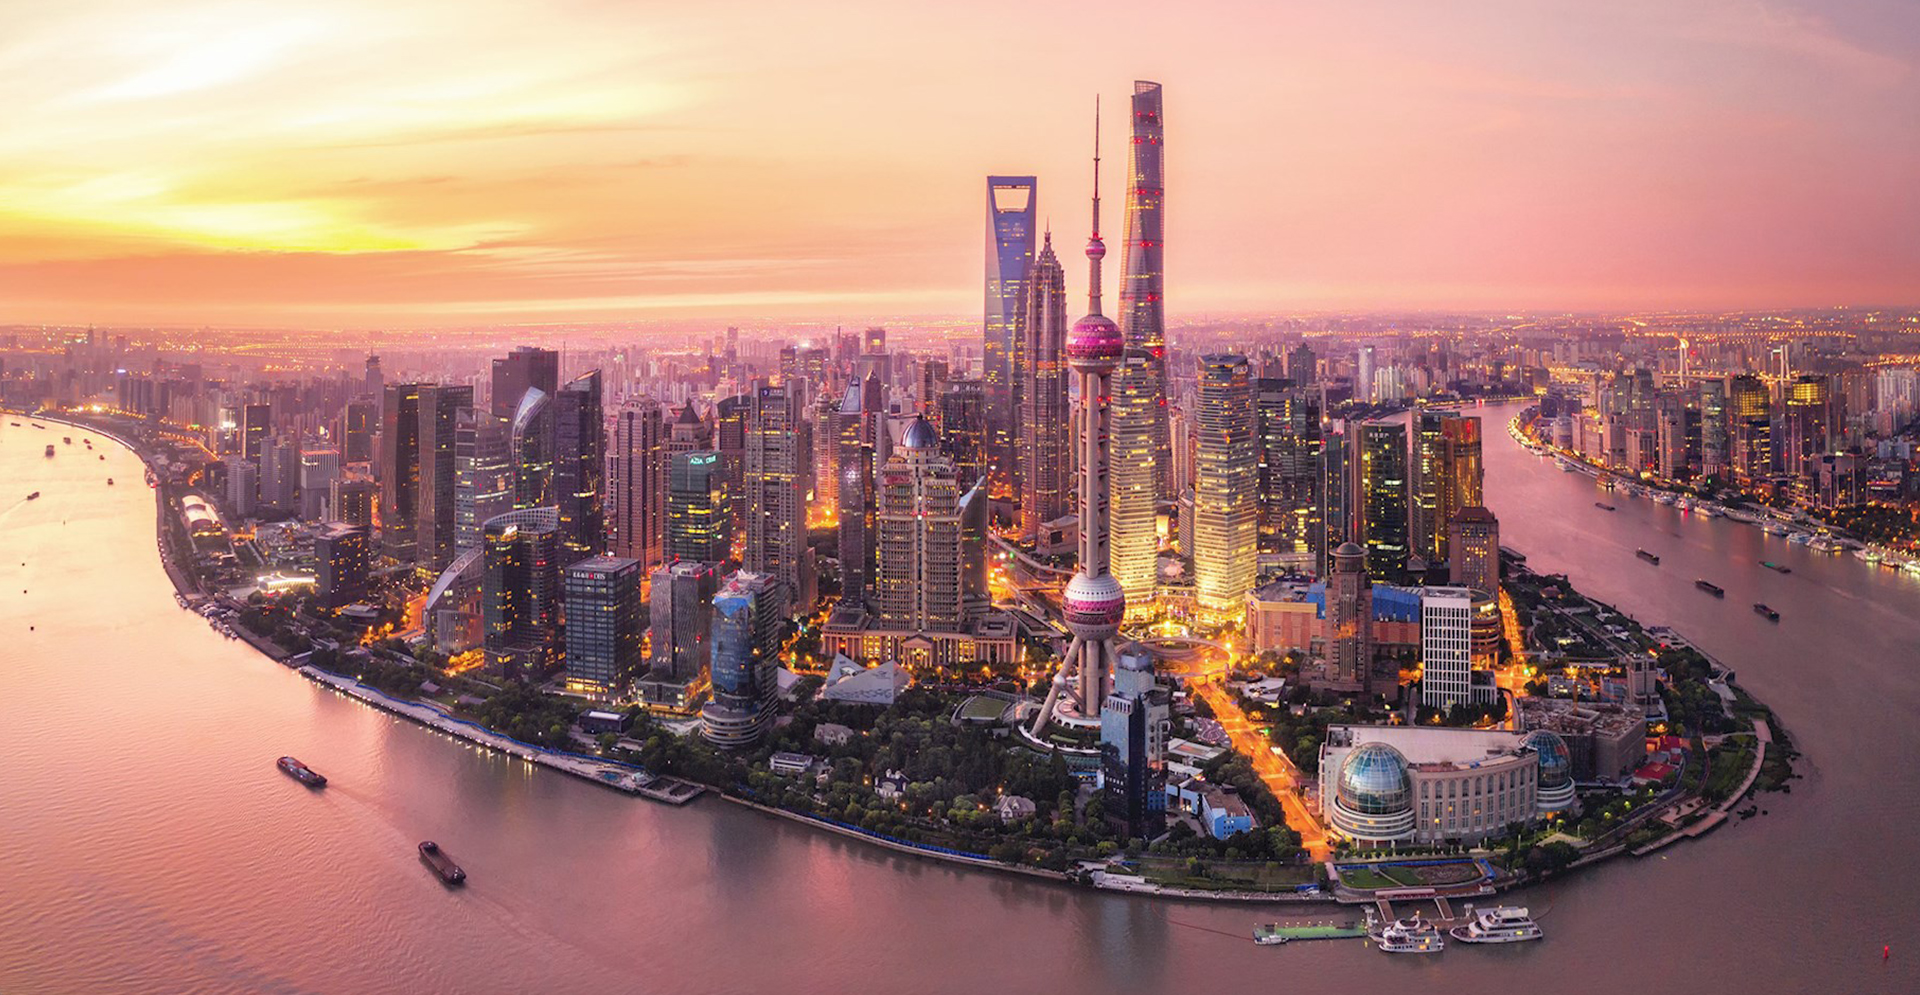 The impact of COVID-19 on Construction Industry in China